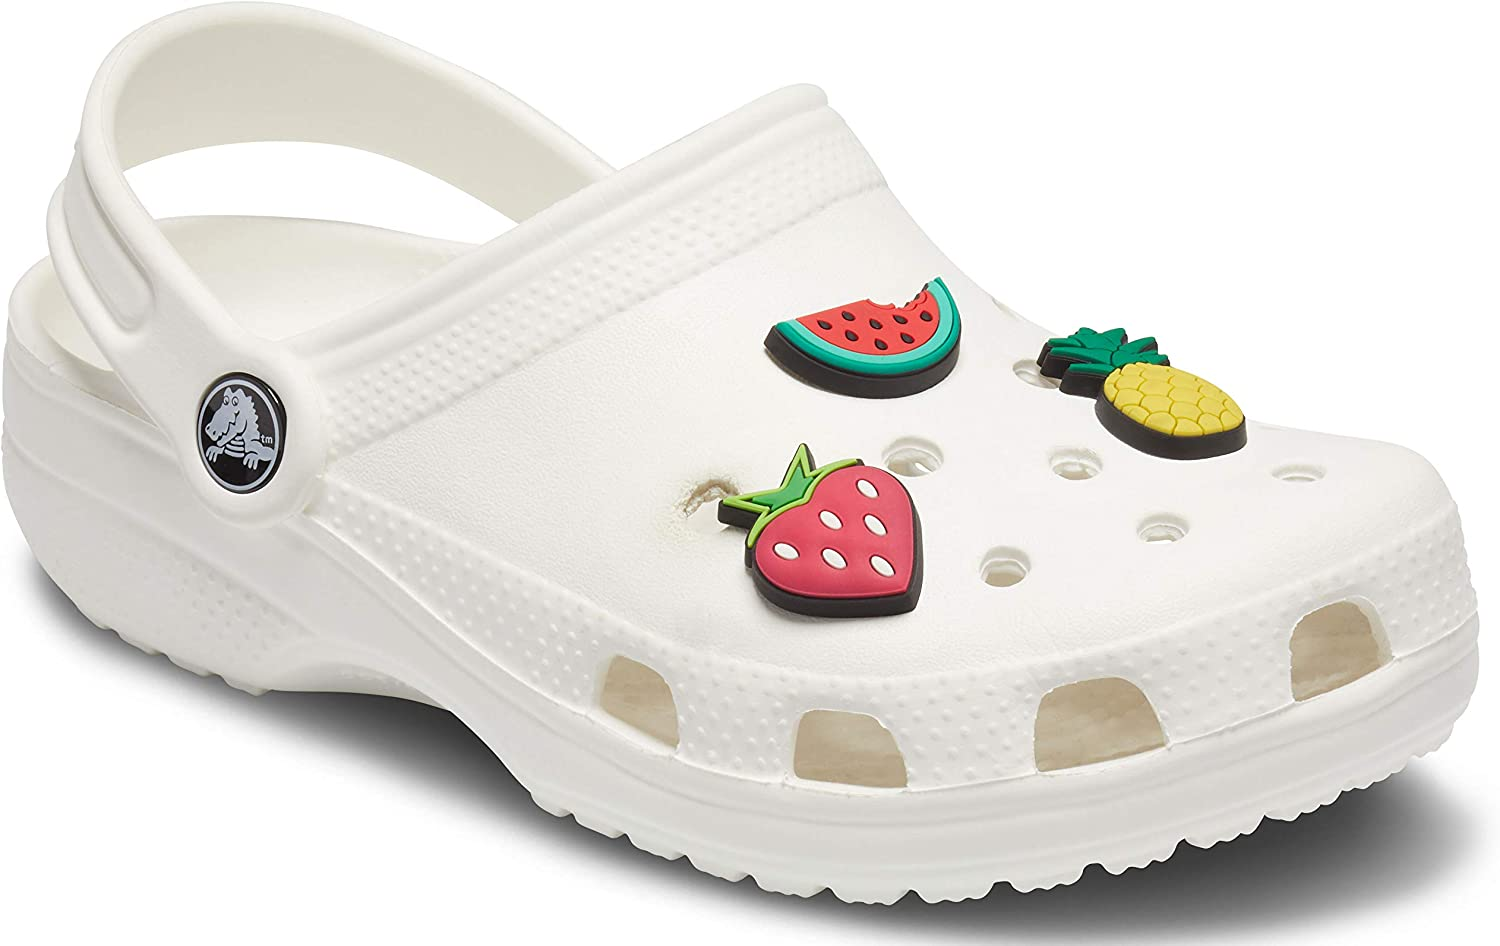 Crocs Shoe Charms 3-Pack | Personalize Jibbitz, Fruit, Small